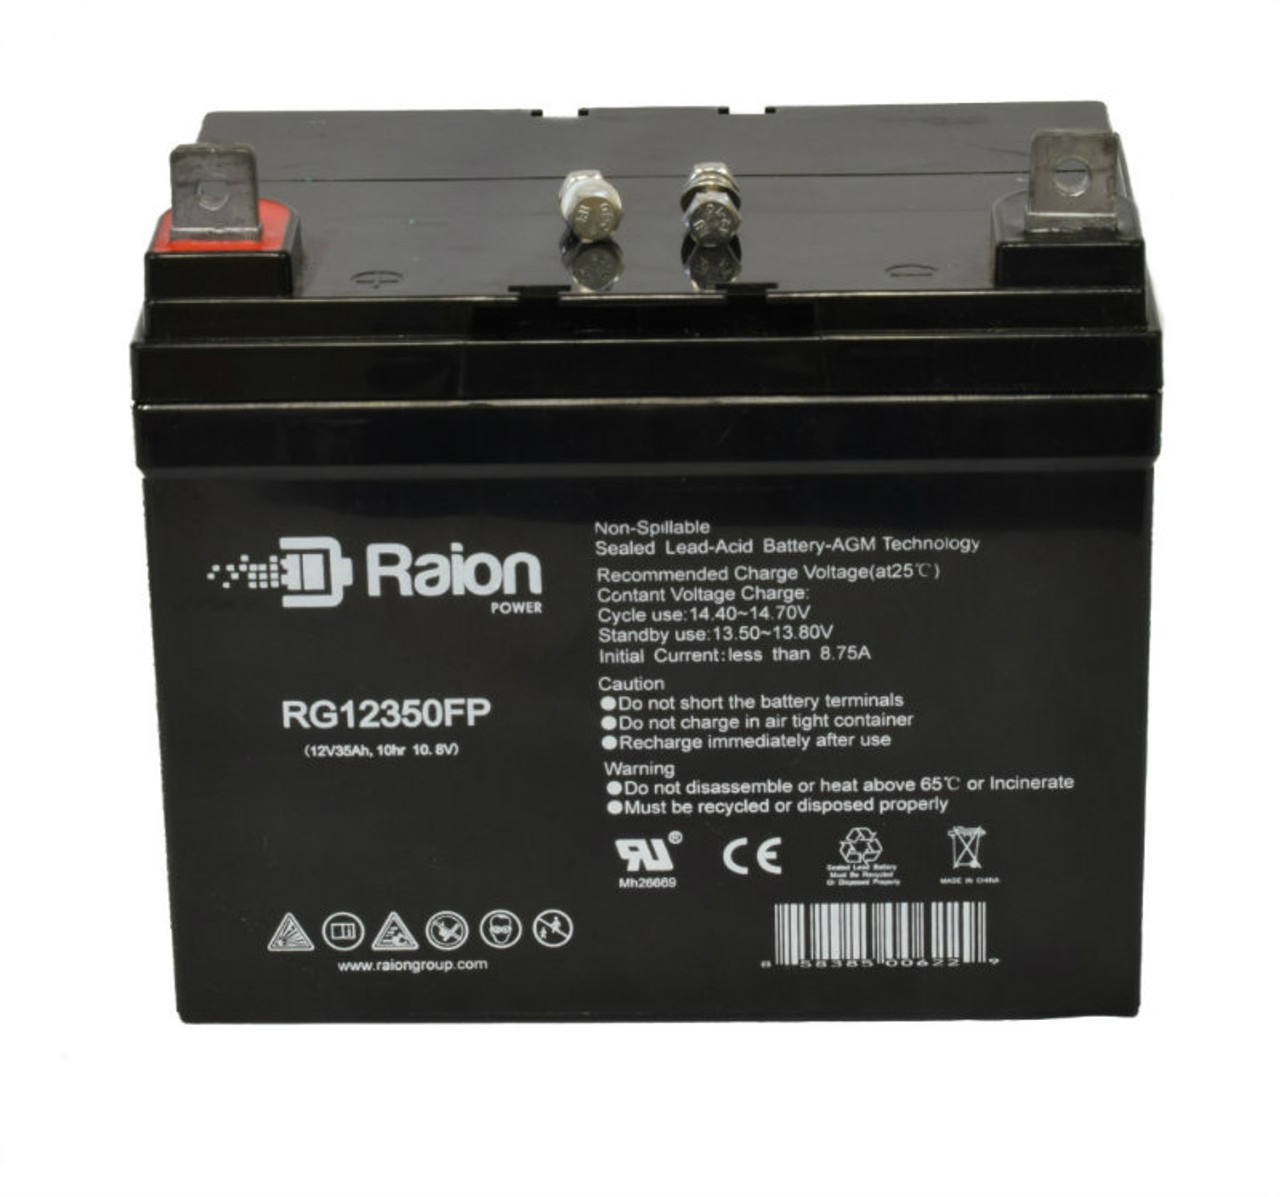 RG12350FP Sealed Lead Acid Battery Pack For Adjusted Semilor SD-1000 Mobility Scooter